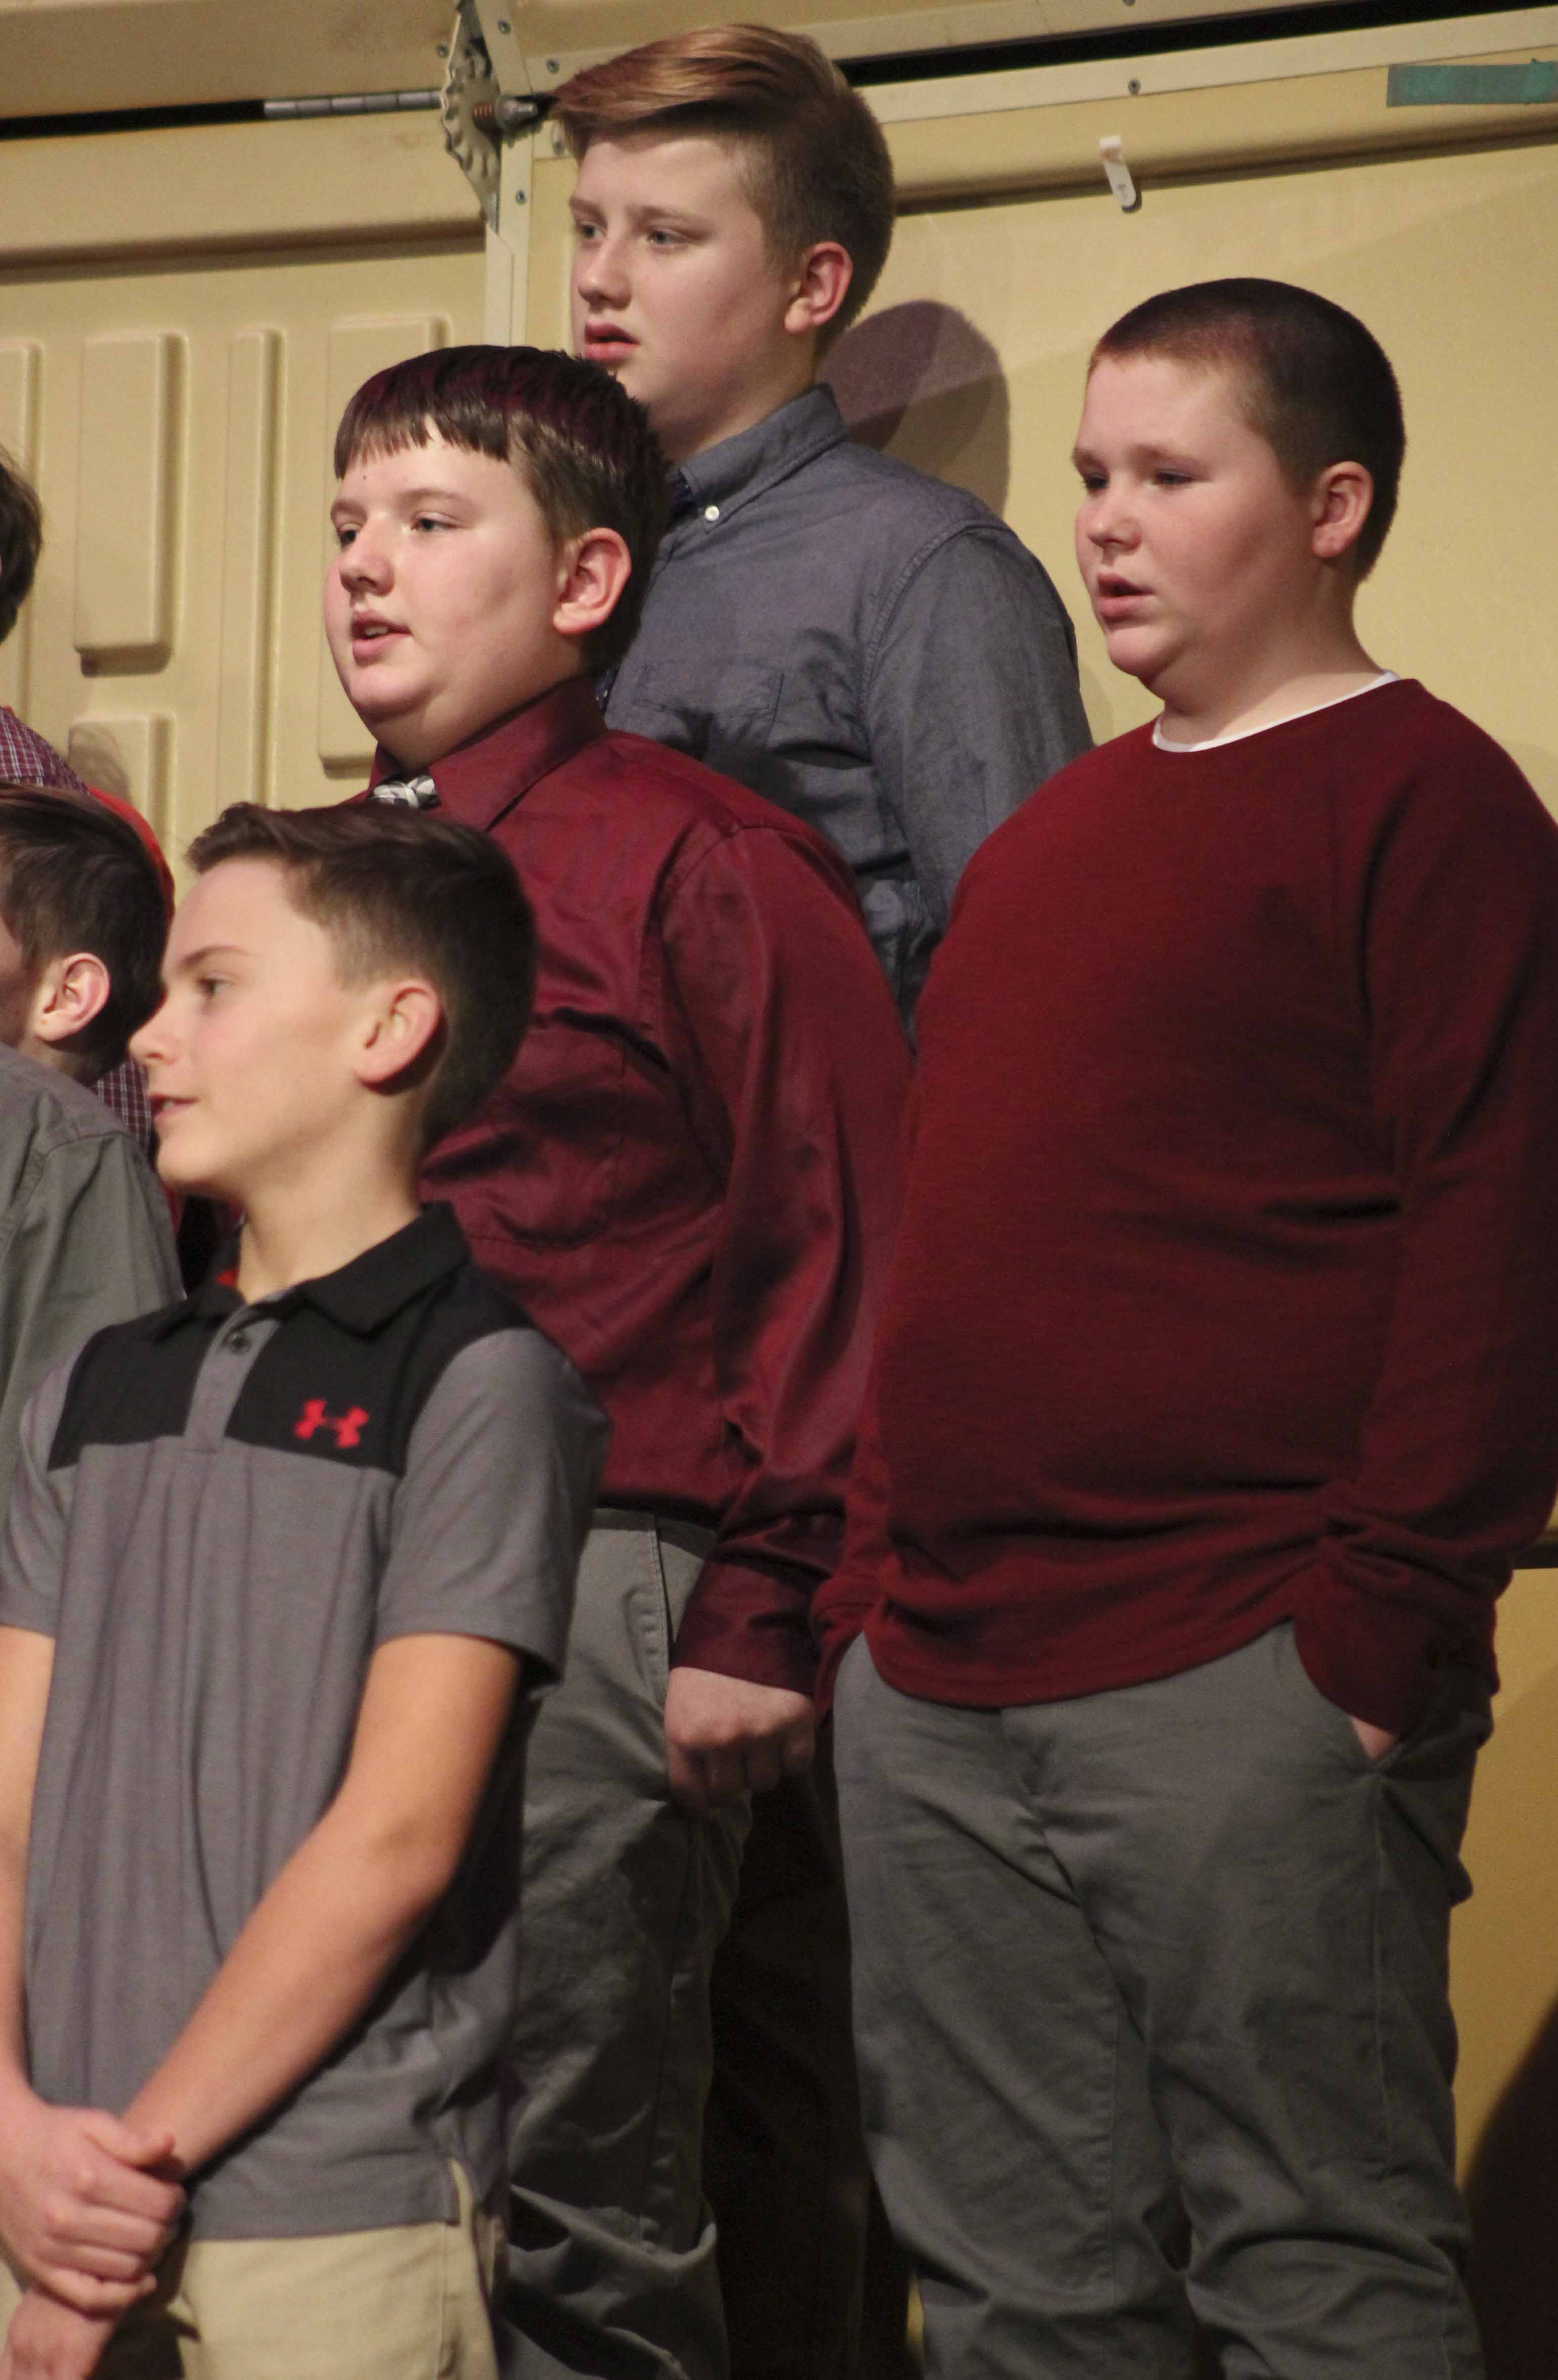 Singing in the seventh-grade portion of the concert, first row: Peyton Schilling. Second row from left: Malcolm Clark and Brady Hayen. Third row: Peyton Speltz.